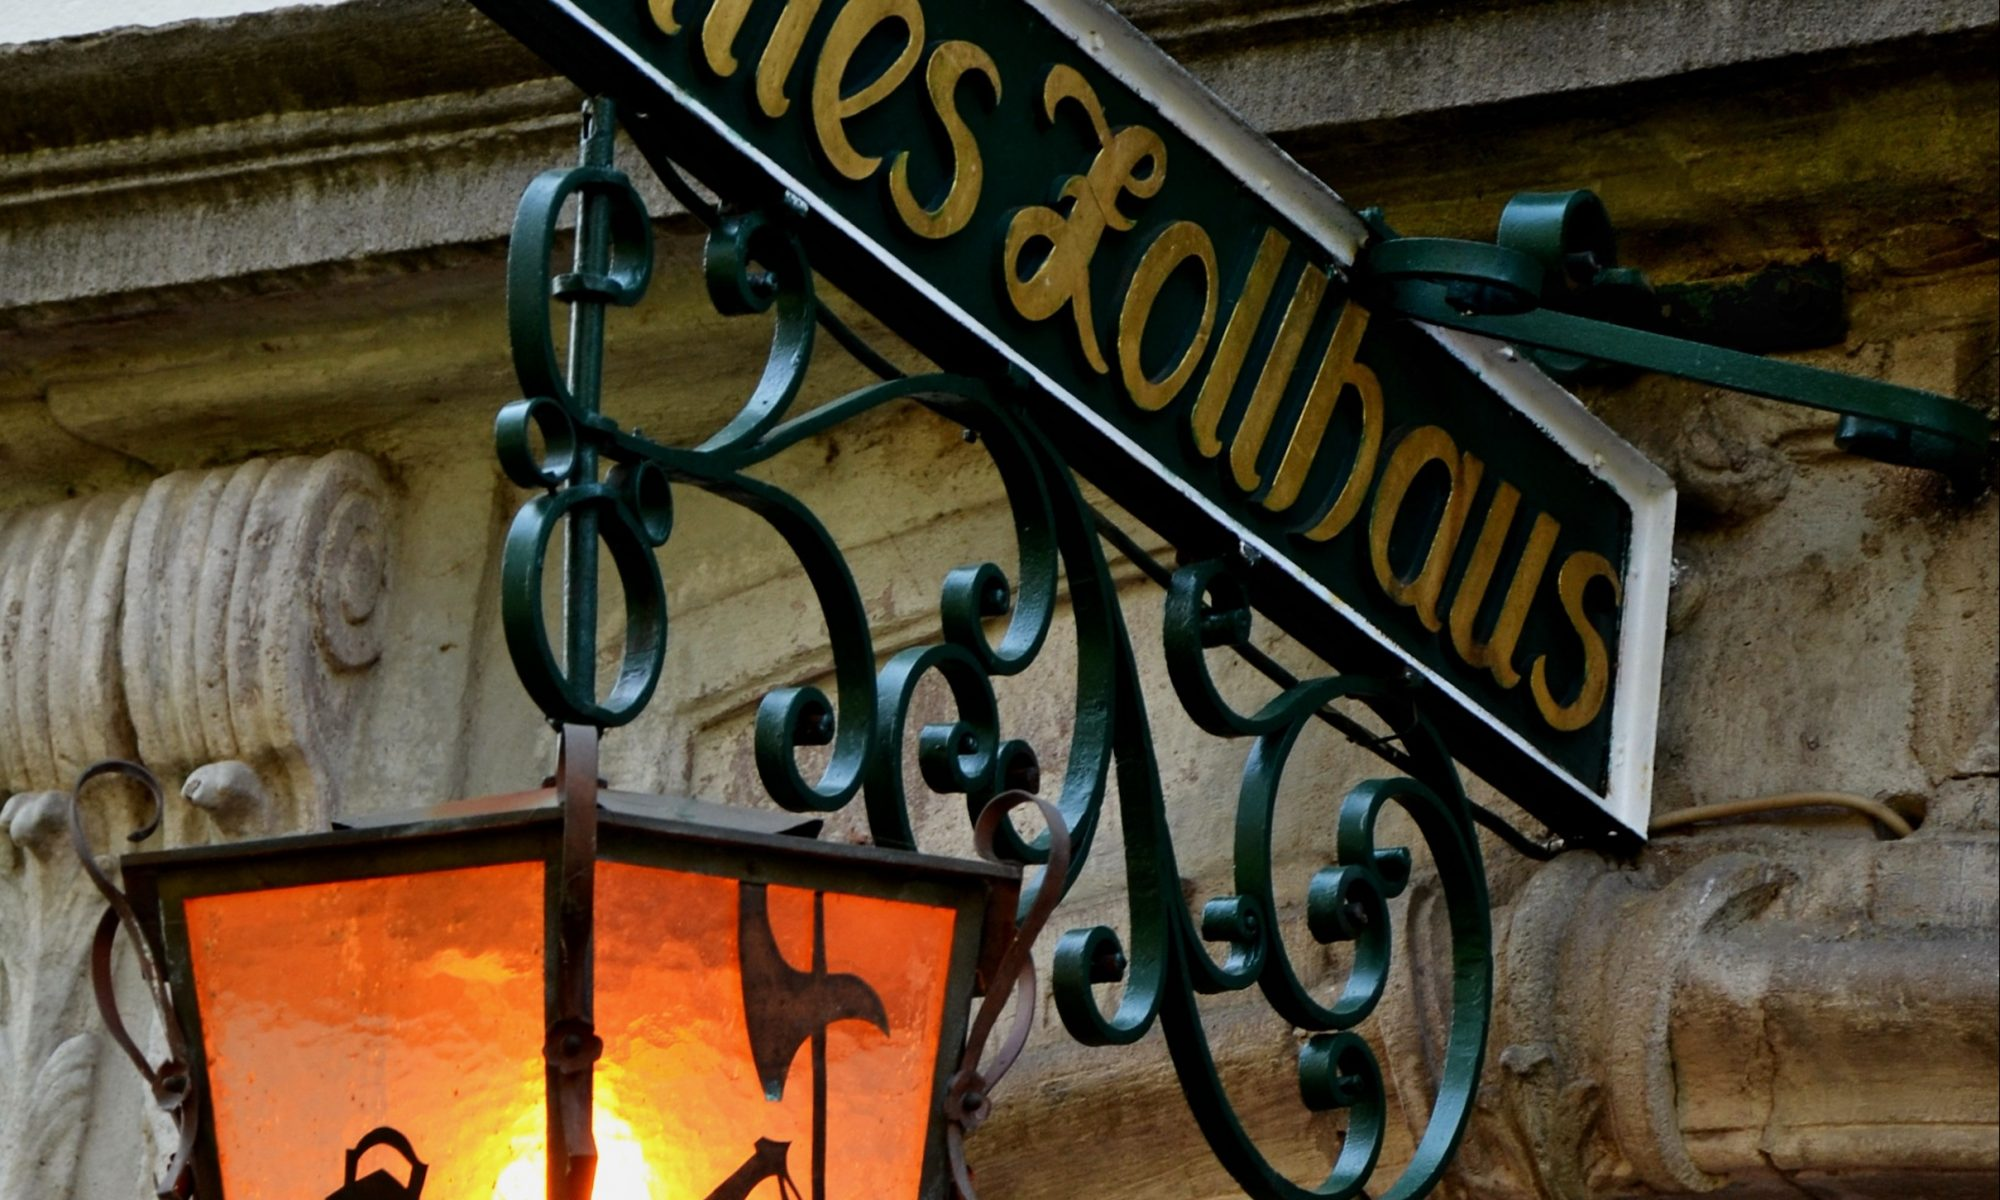 Historic street lamp and sign.